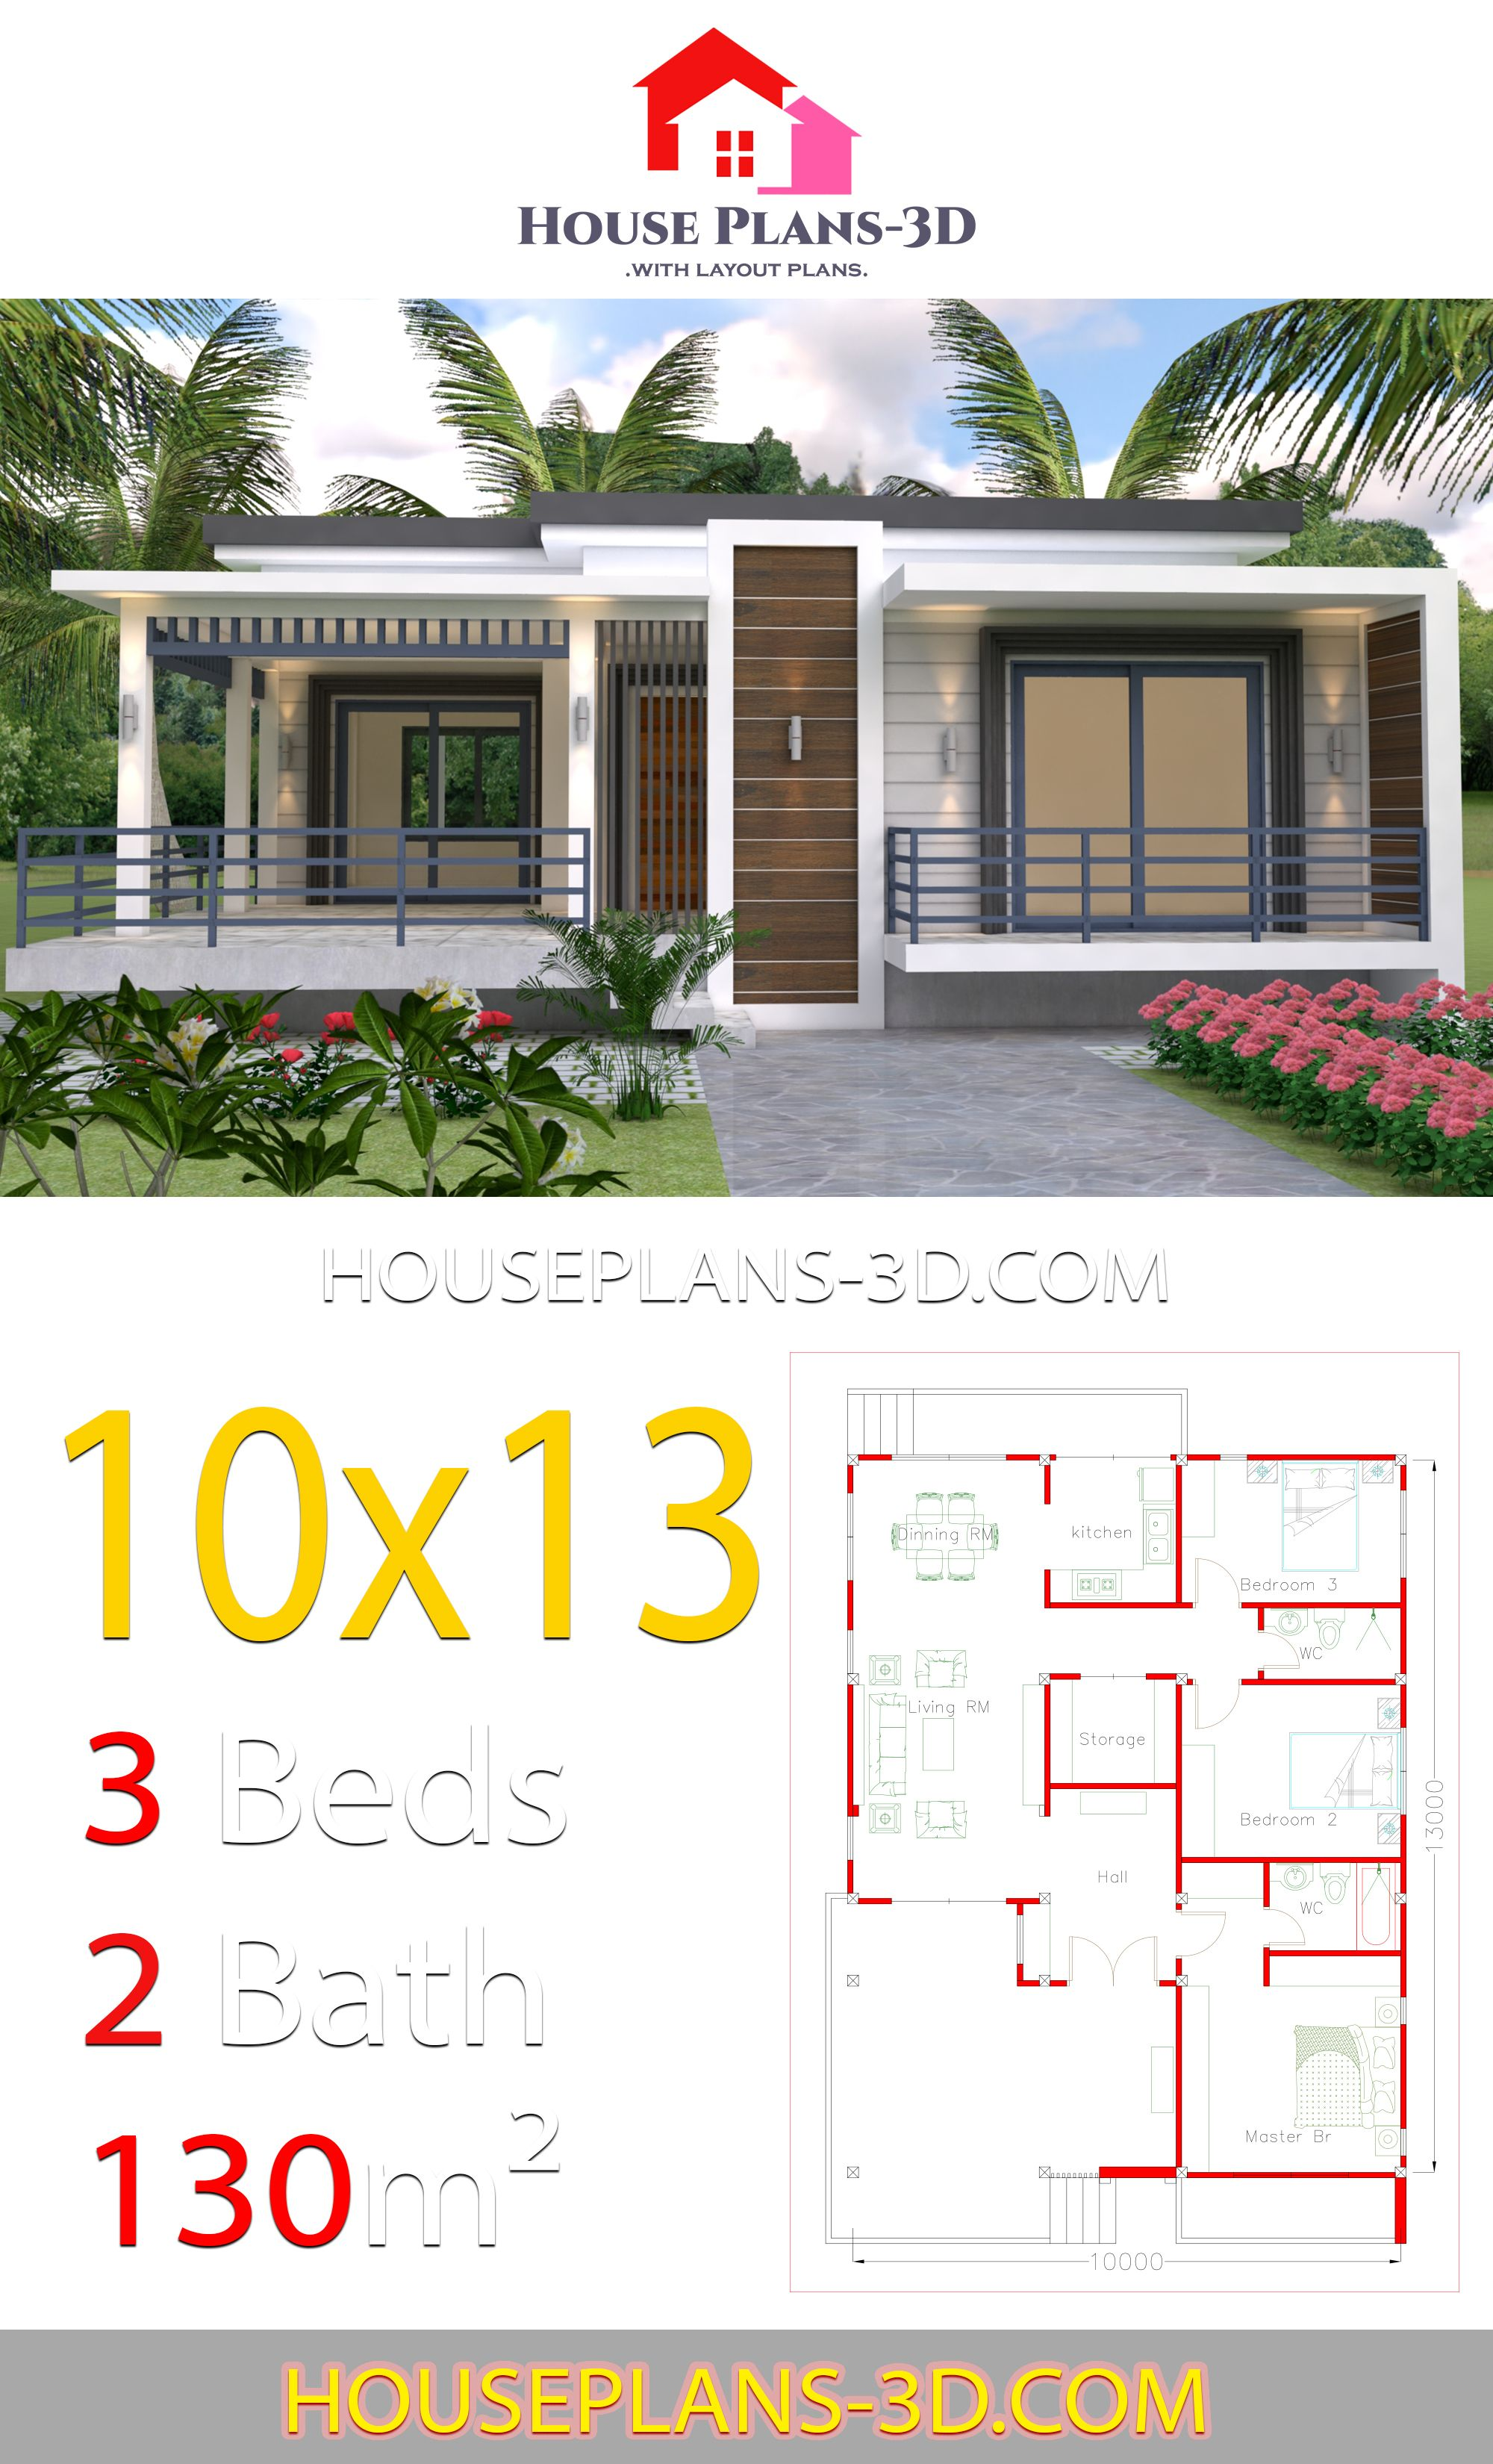 Stunning 3 Bedroom Home Design In 1675 Square Feet With Free Plan Courtyard House Plans Kerala Houses Kerala House Design